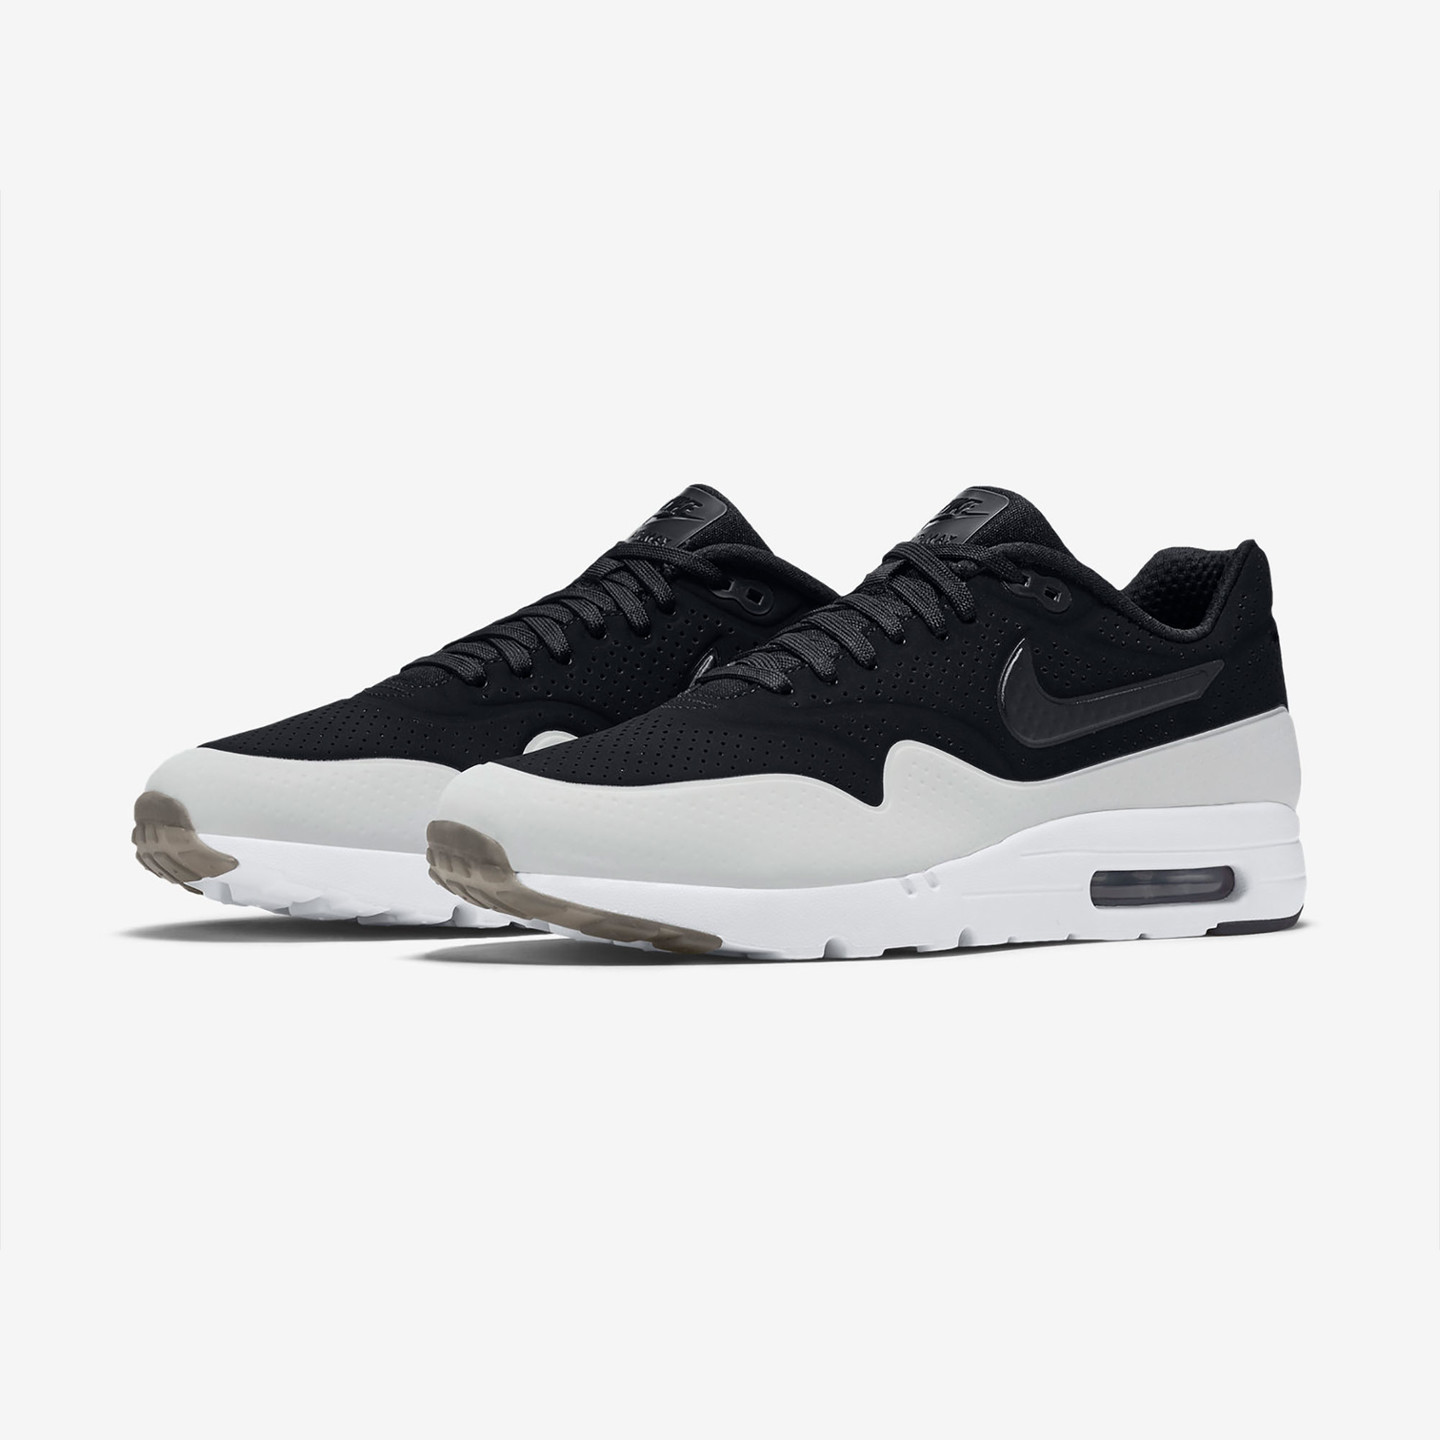 Nike Air Max 1 Ultra Moire Black / White 705297-011-46